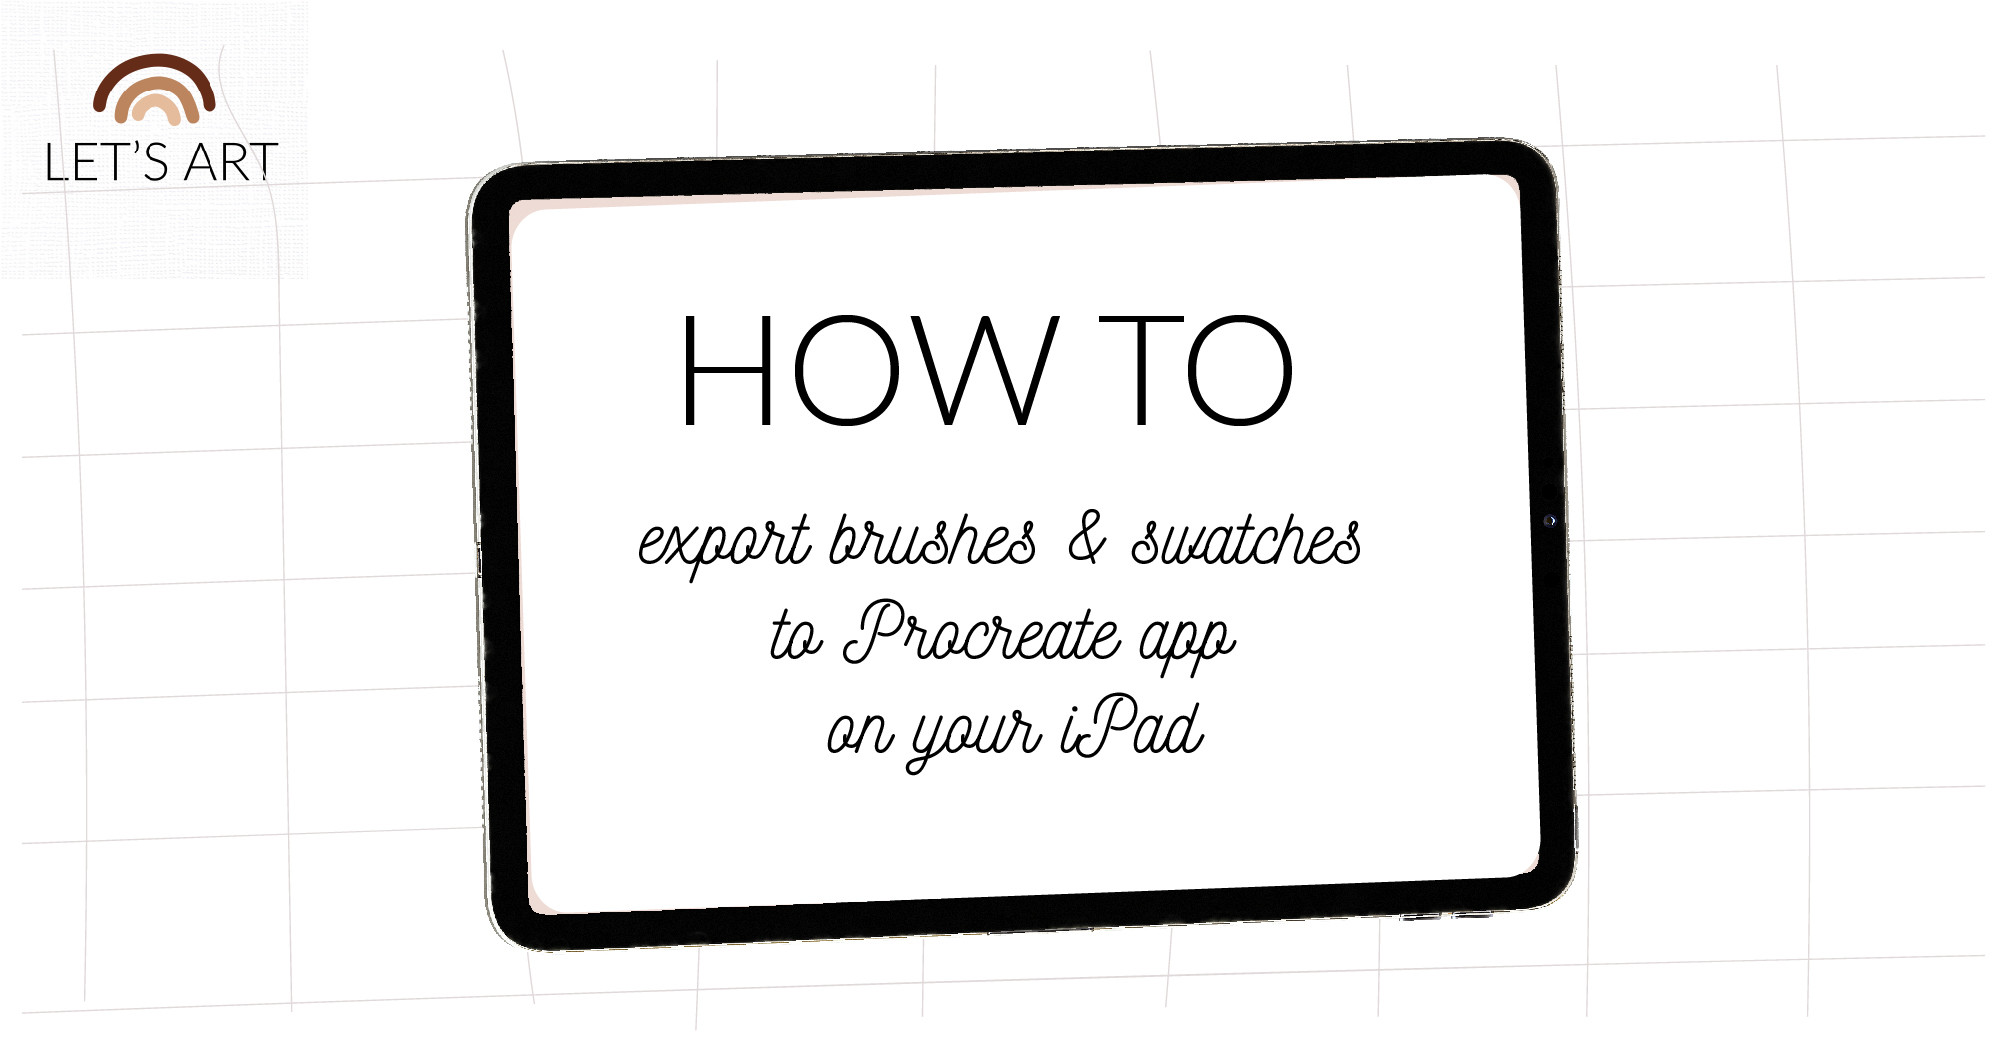 How to import and unzip brushes and swatches to Procreate